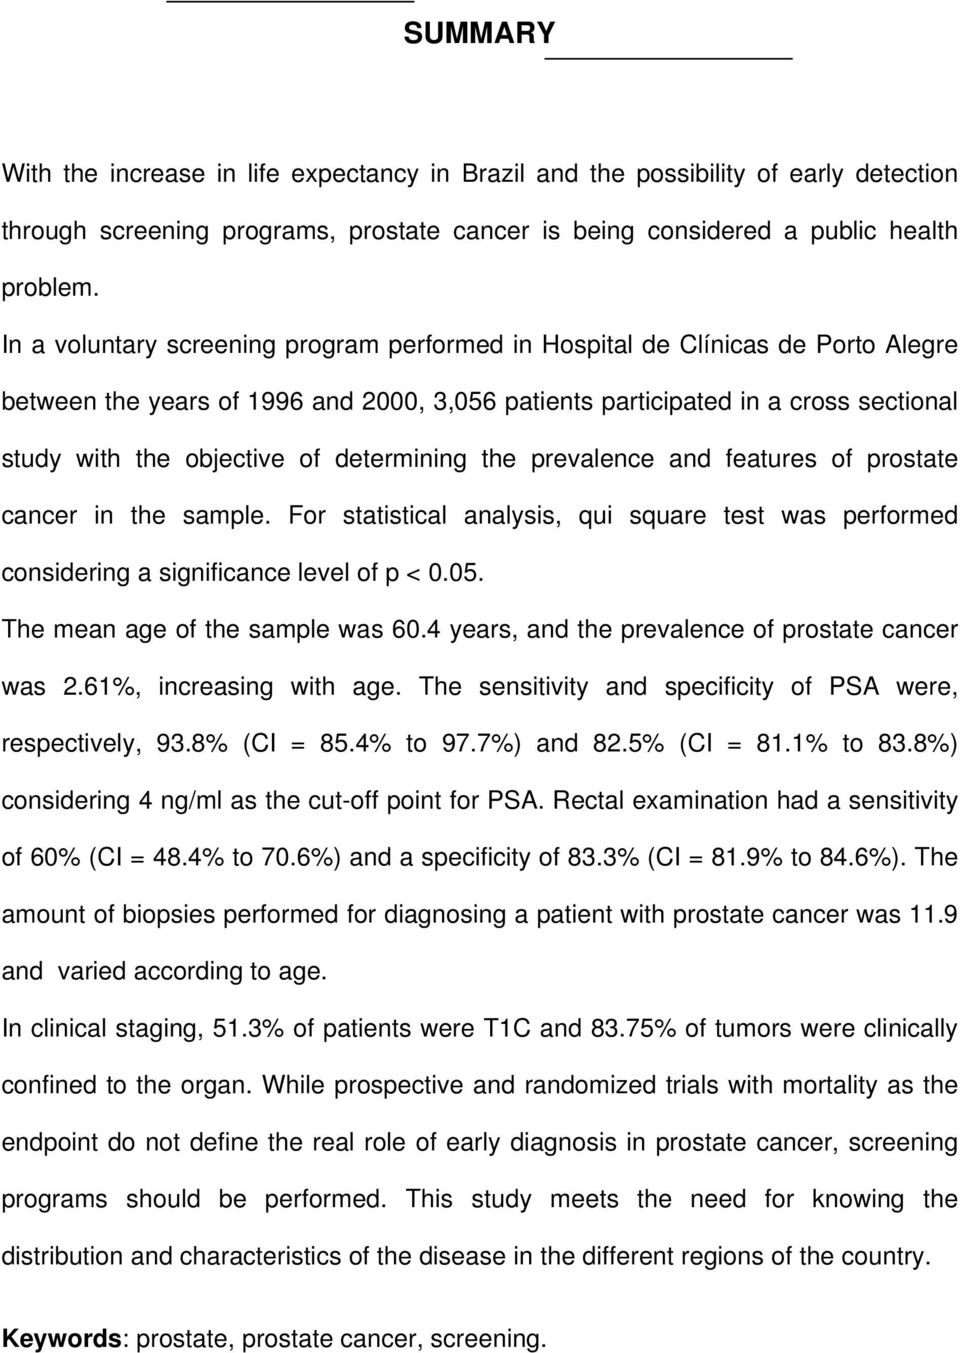 determining the prevalence and features of prostate cancer in the sample. For statistical analysis, qui square test was performed considering a significance level of p < 0.05.